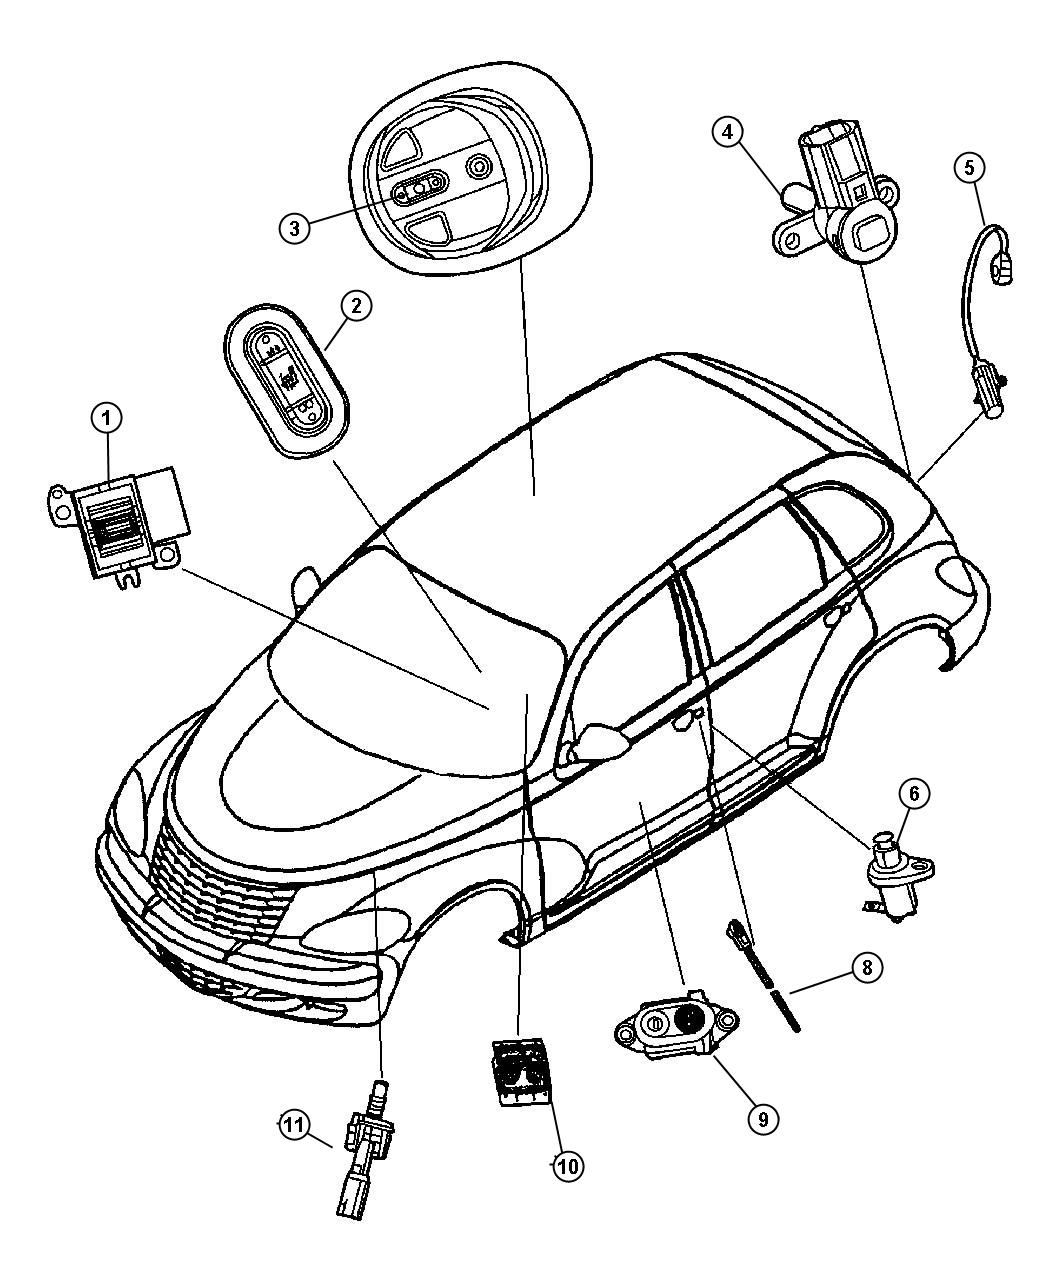 Dodge Ram Switch Liftgate Key Position